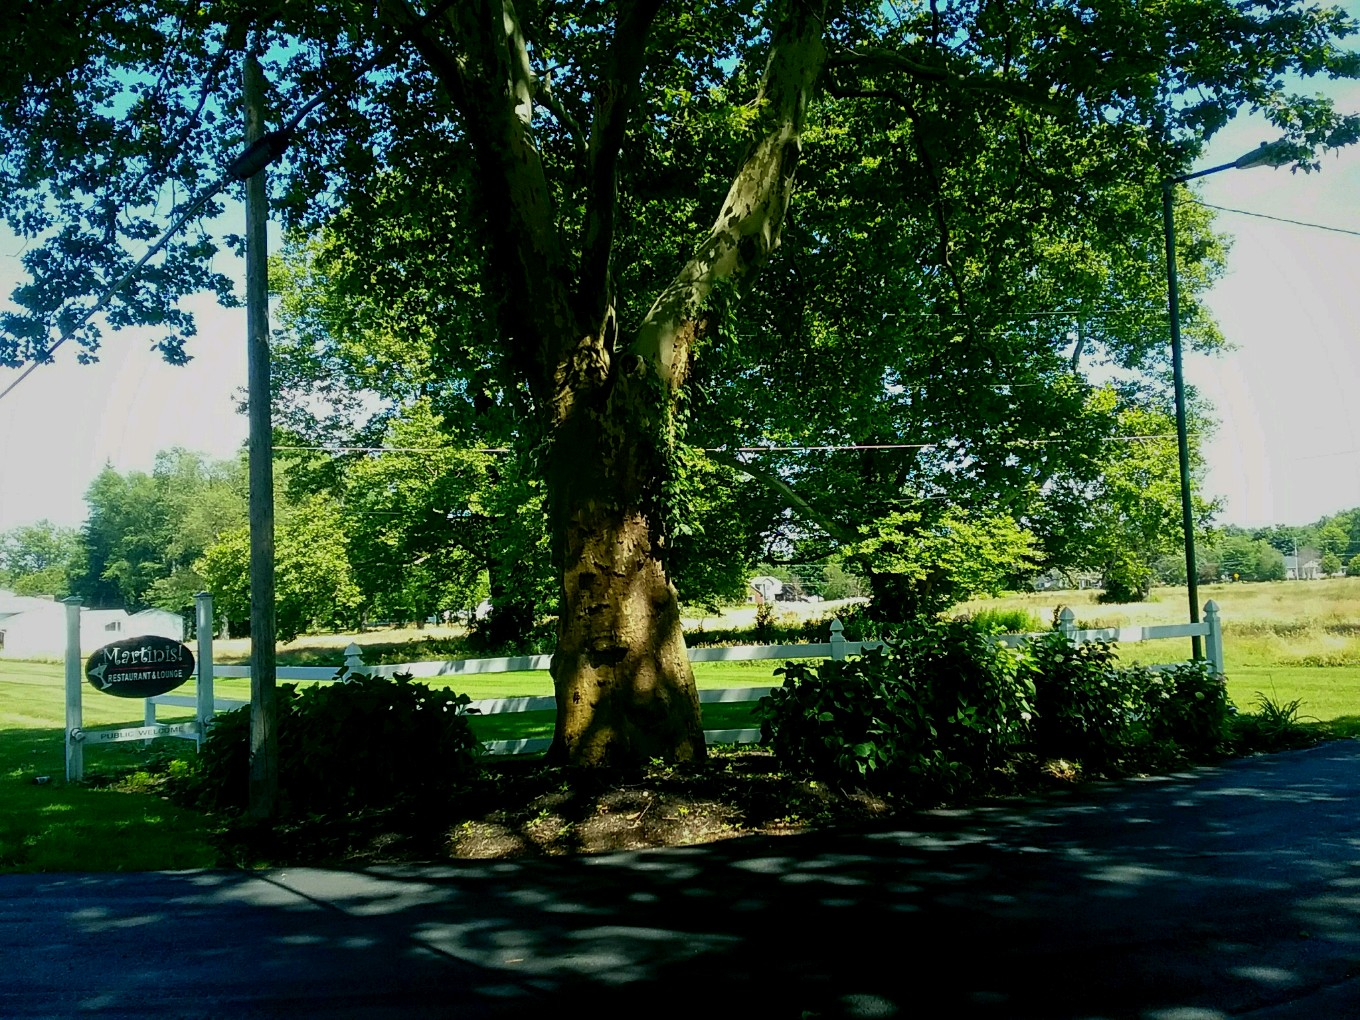 Red Brook Metropark entrance with tree